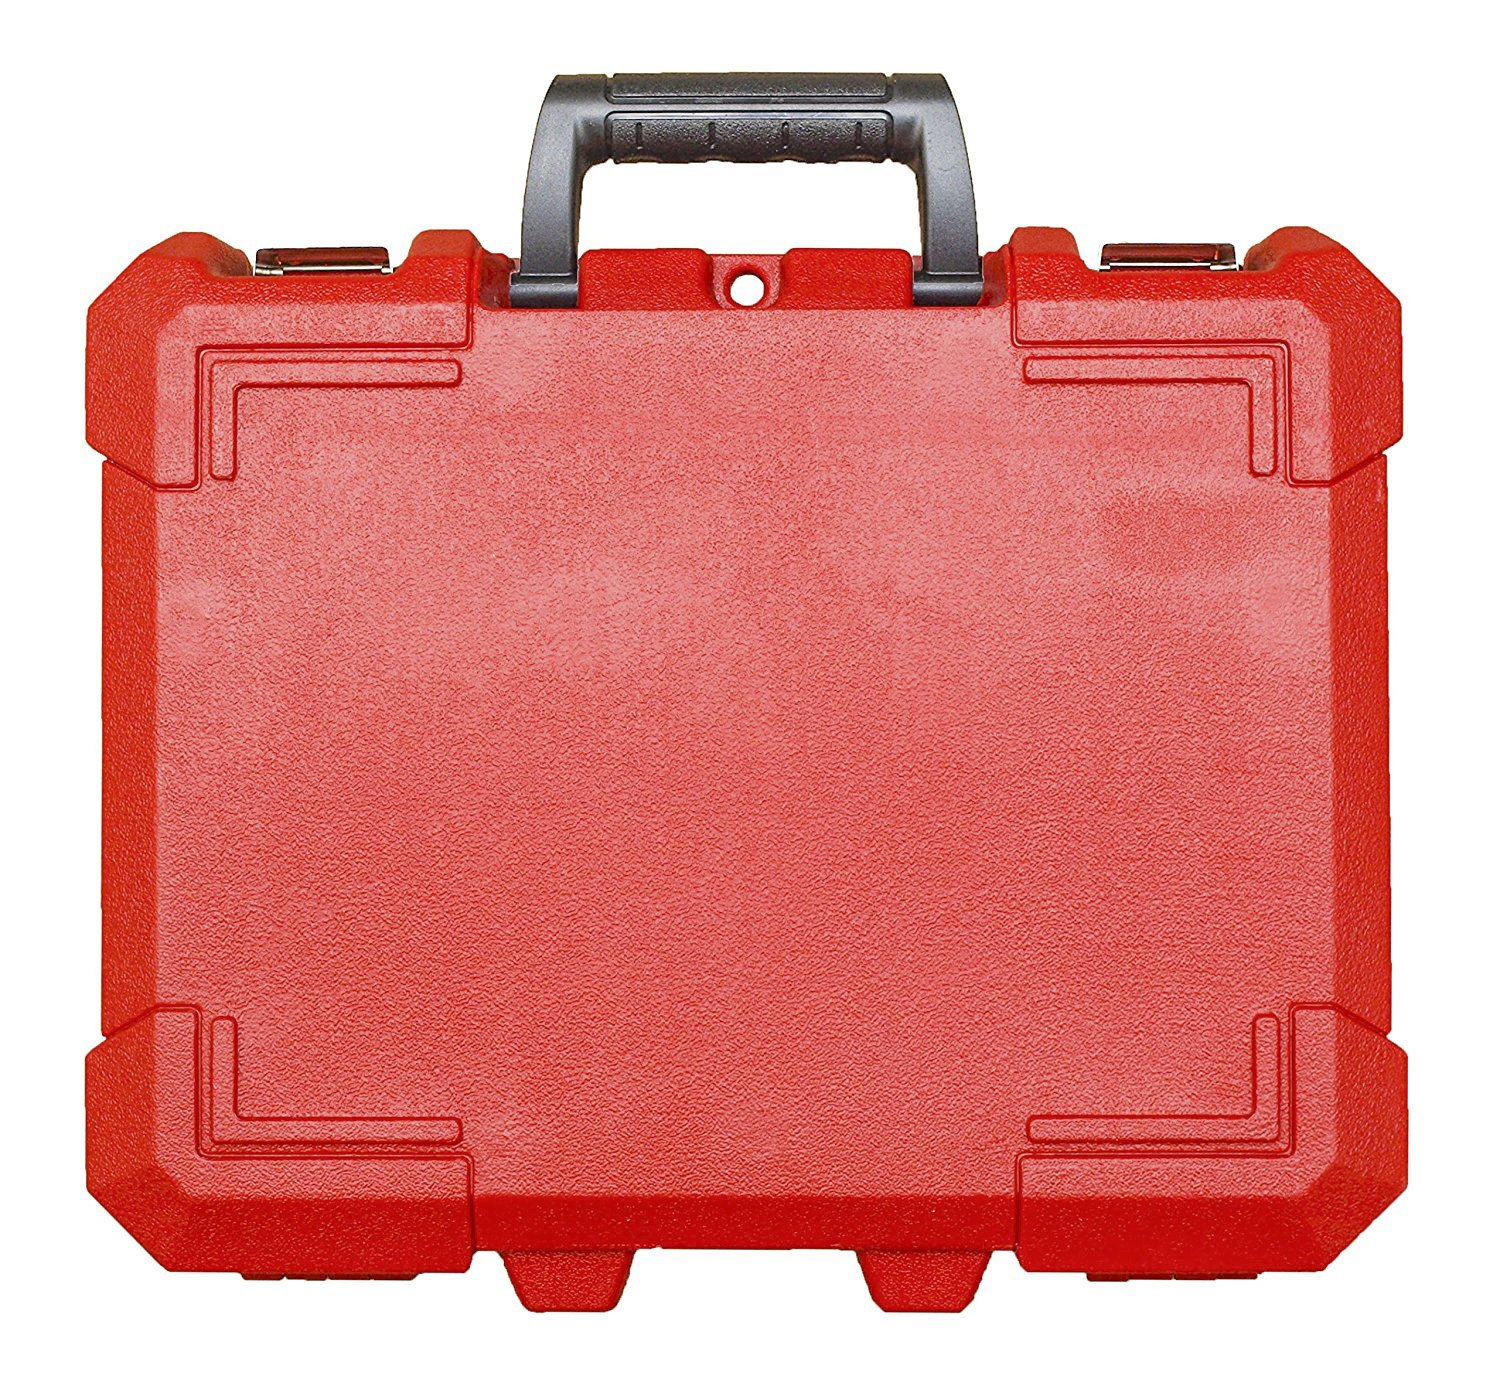 Milwaukee Tool Case Only - Fits 2606-20 / 2607-20 / 2606-22CT / 2607-22CT M18 Drill Driver / Hammer Drill Driver (No Tools / Accessories Included) by Milwaukee (Image #3)